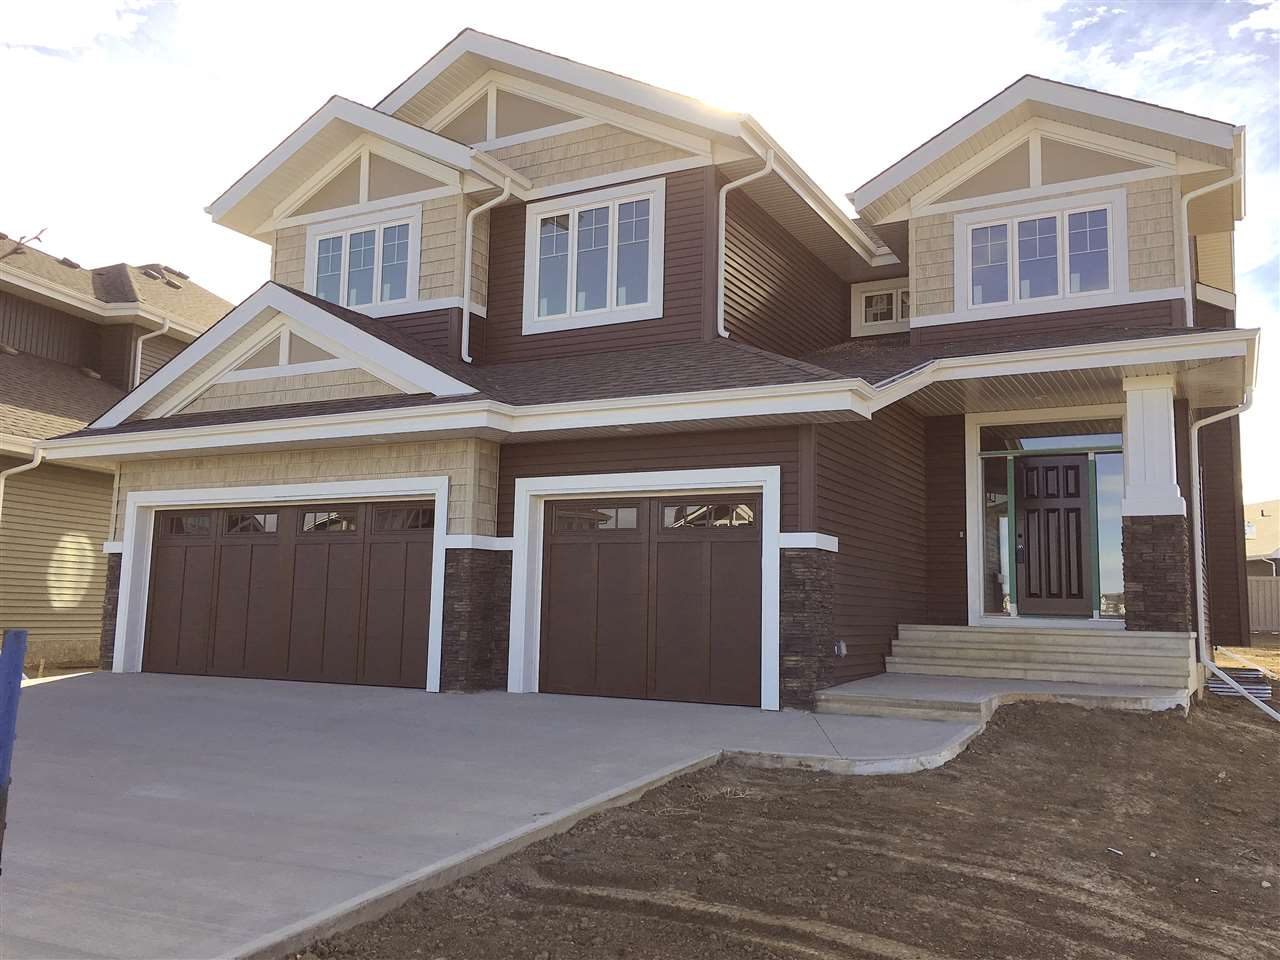 Main Photo: 8712 219 Street in Edmonton: Zone 58 House for sale : MLS®# E4097301